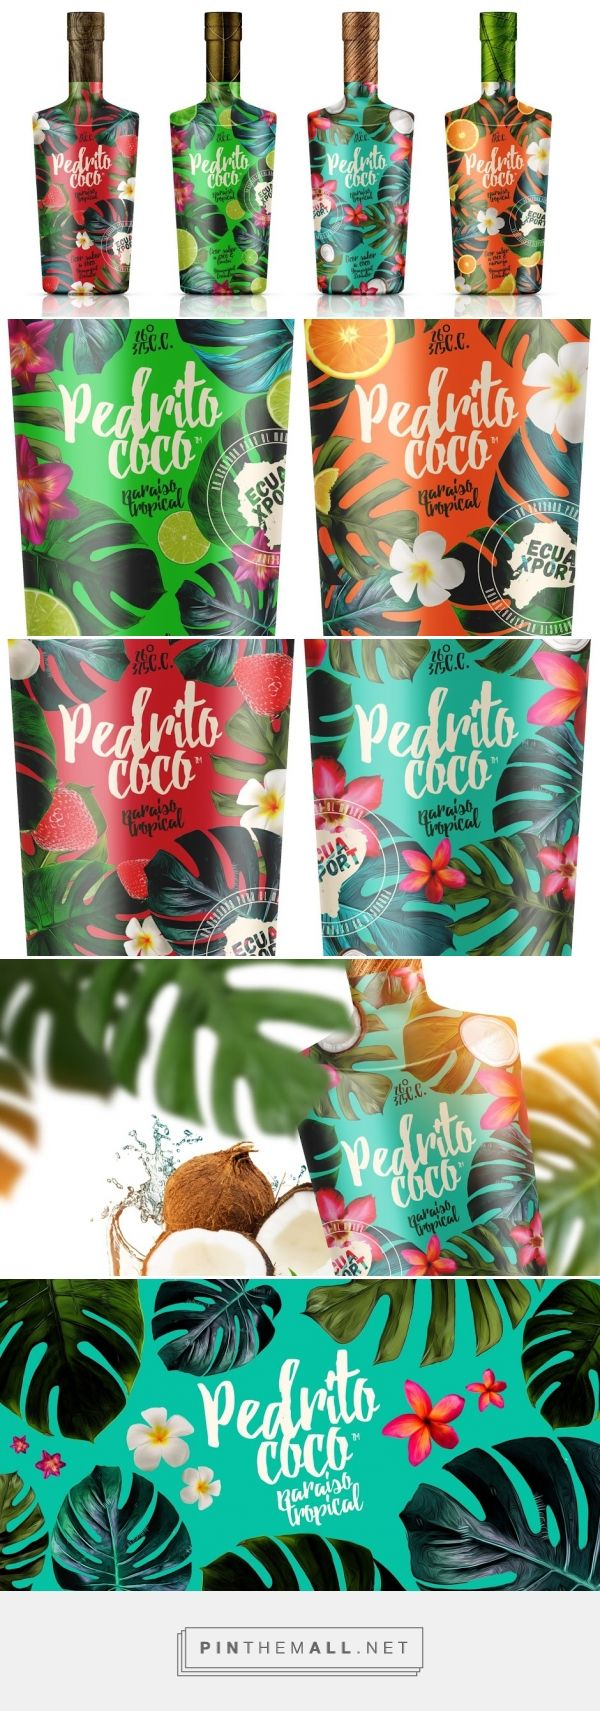 Pedrito Coco (Concept) / Pedrito Coco is a coconut-flavored liquor from Ecuador by Pulsum Brands